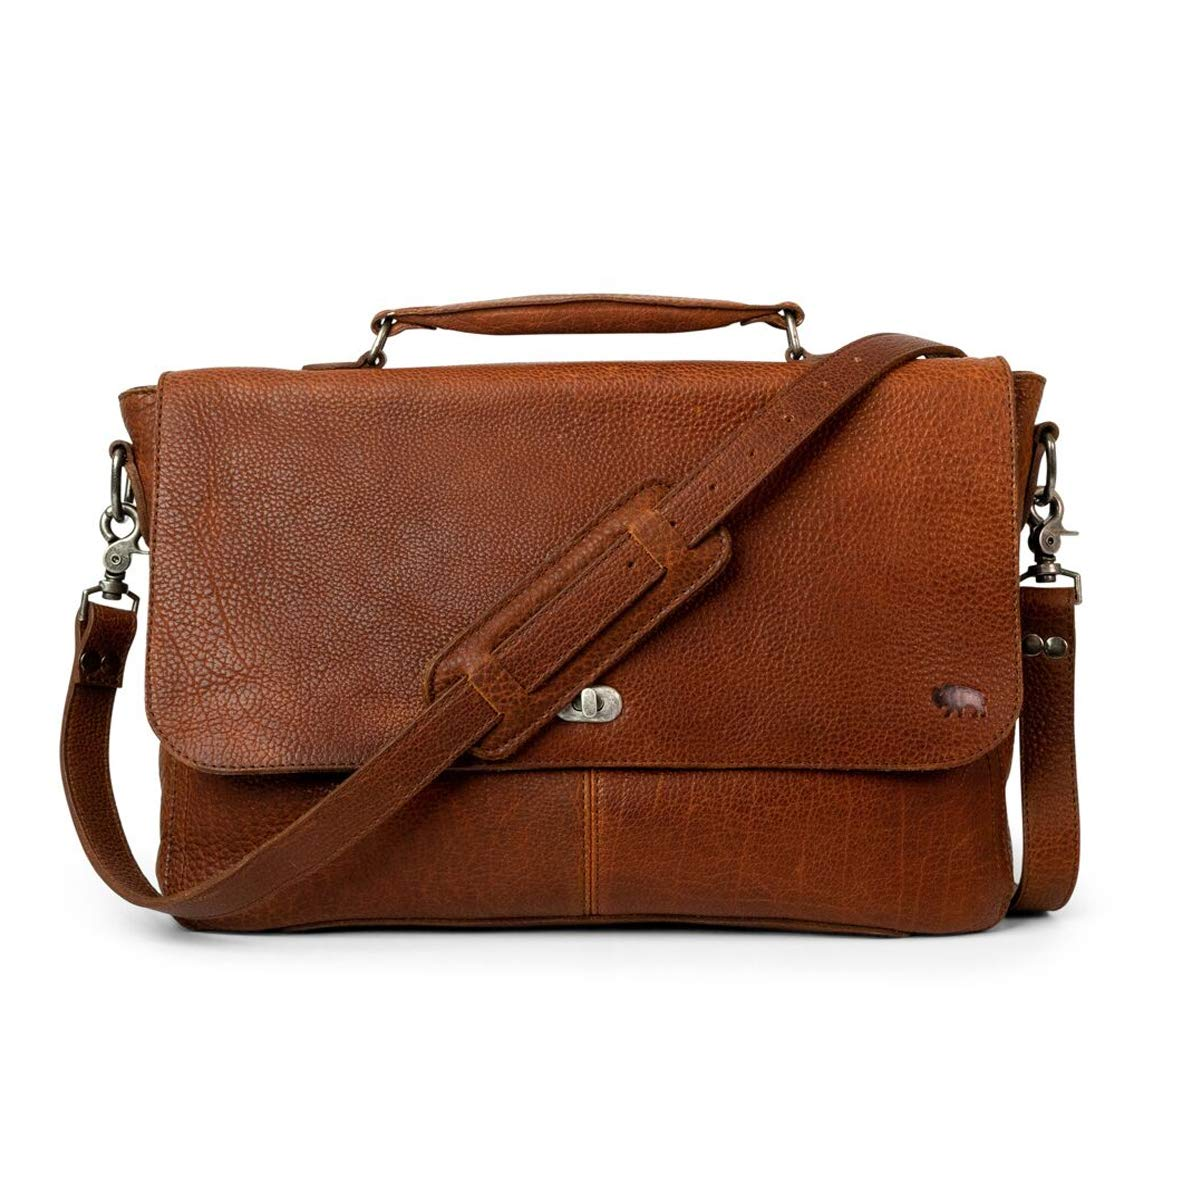 Full Grain Bison Leather Laptop Messenger Bag for Men   Ryder Reserve by Buffalo Jackson   Briefcase Fits 13'' 14'' 15'' Laptops   Made in North America   Brown